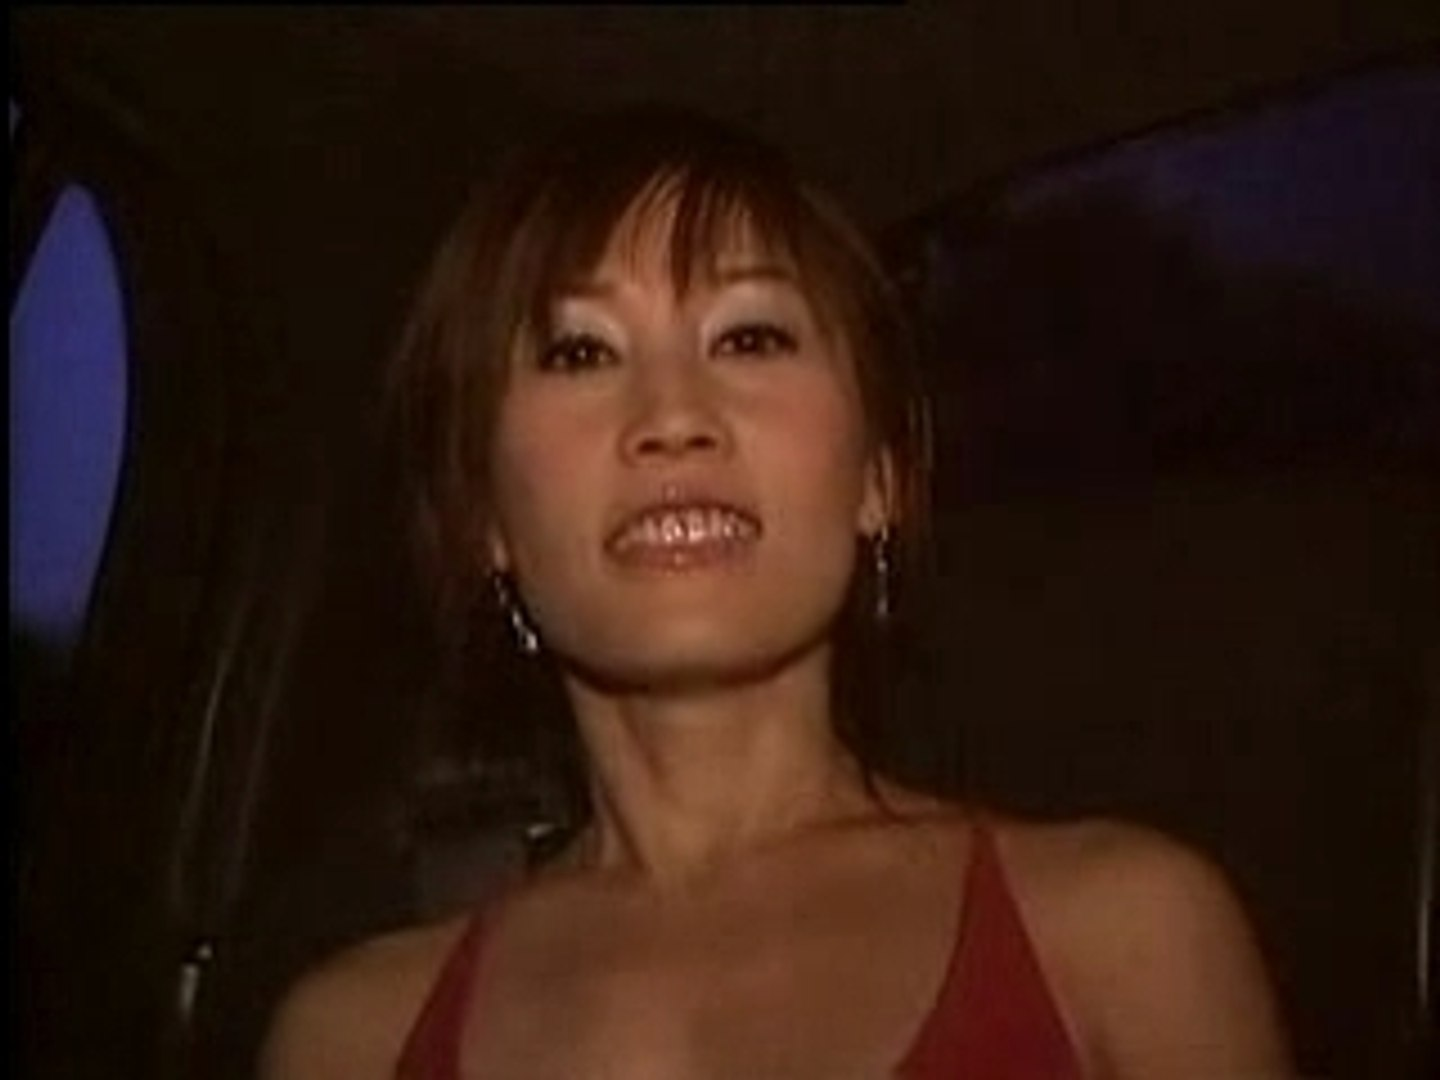 Sun Ho (Ho Yeow Sun) - Interview in A Hollywood Limousine 1